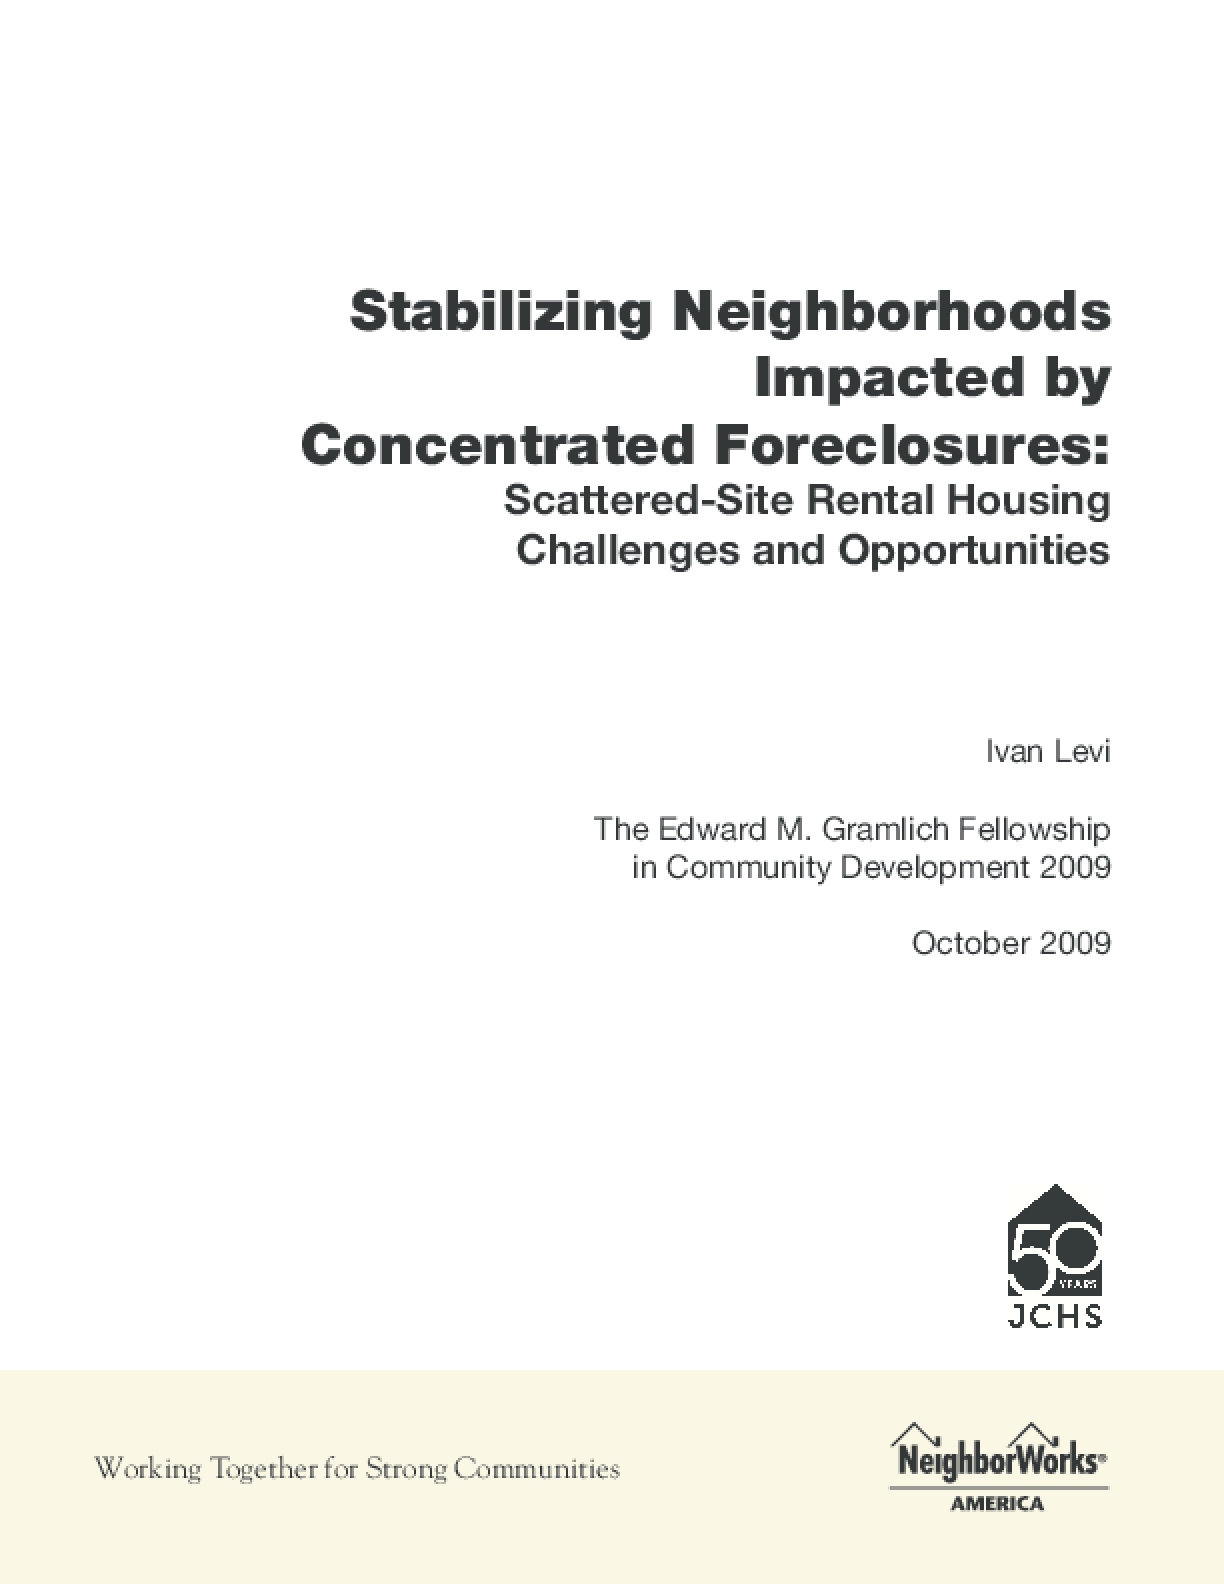 Stabilizing Neighborhoods Impacted by Concentrated Foreclosures: Scattered-Site Rental Housing Challenges and Opportunities